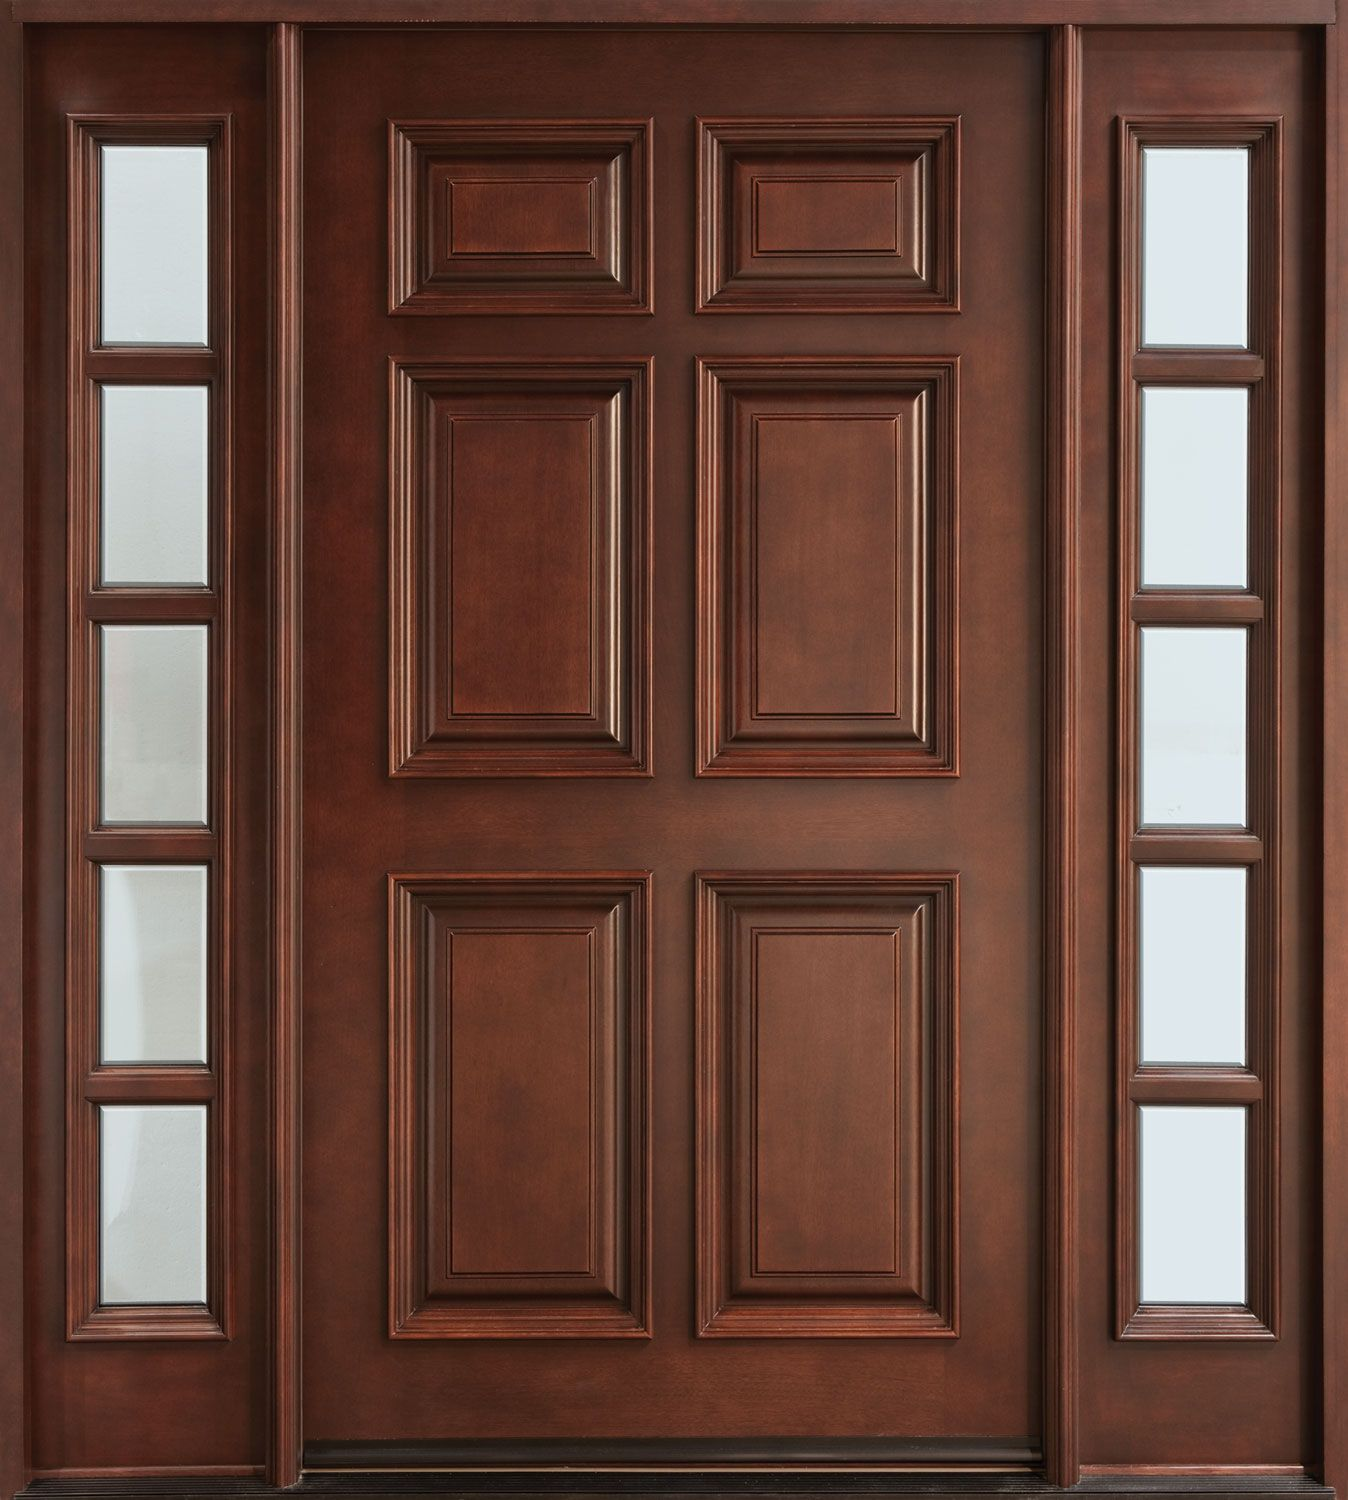 Wood Doors Simpson Door has built handcrafted solid wood doors since 1912 Masonite combines a long standing spirit  sc 1 st  Pinterest & Wood Doors Simpson Door has built handcrafted solid wood doors since ...